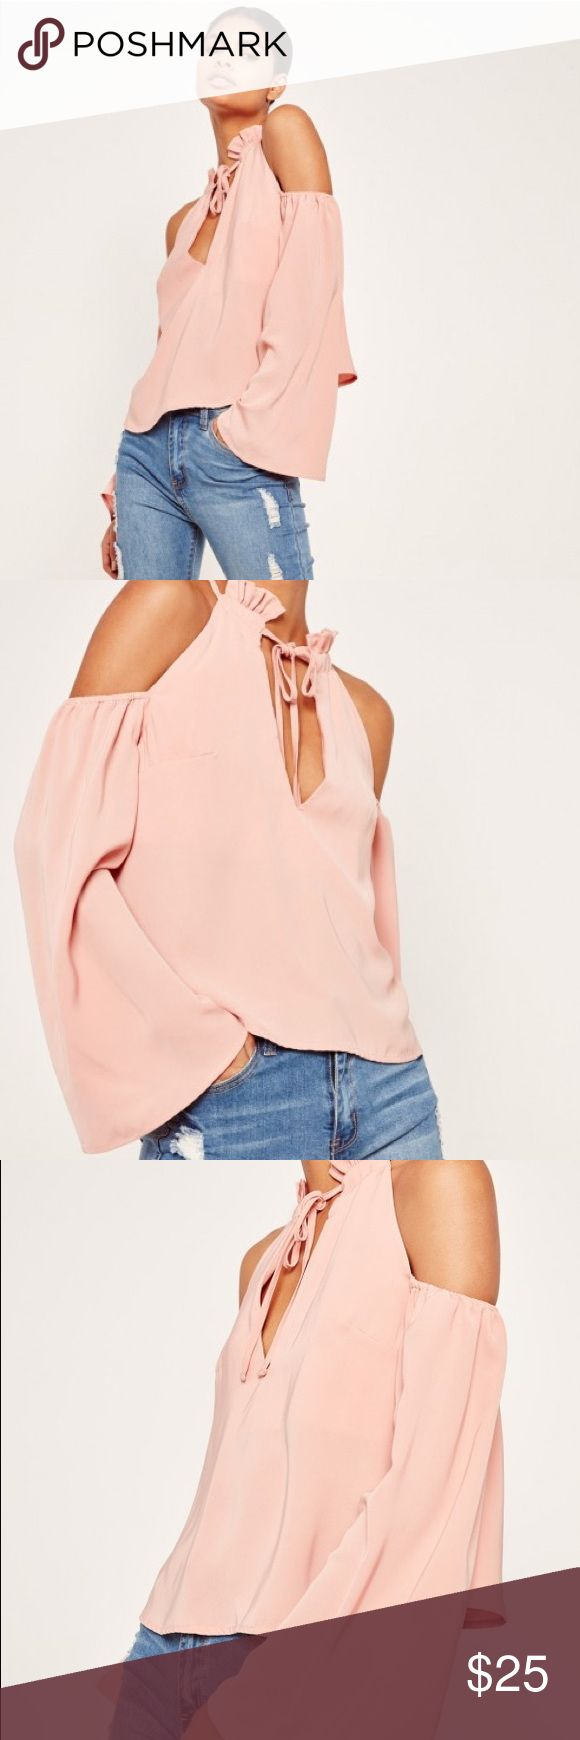 Missguided Top Worn once. Baby pink. Cut out shoulders. Drawstring to tie up at the neckline. Trumpet sleeves. Size 6. Missguided Tops Blouses